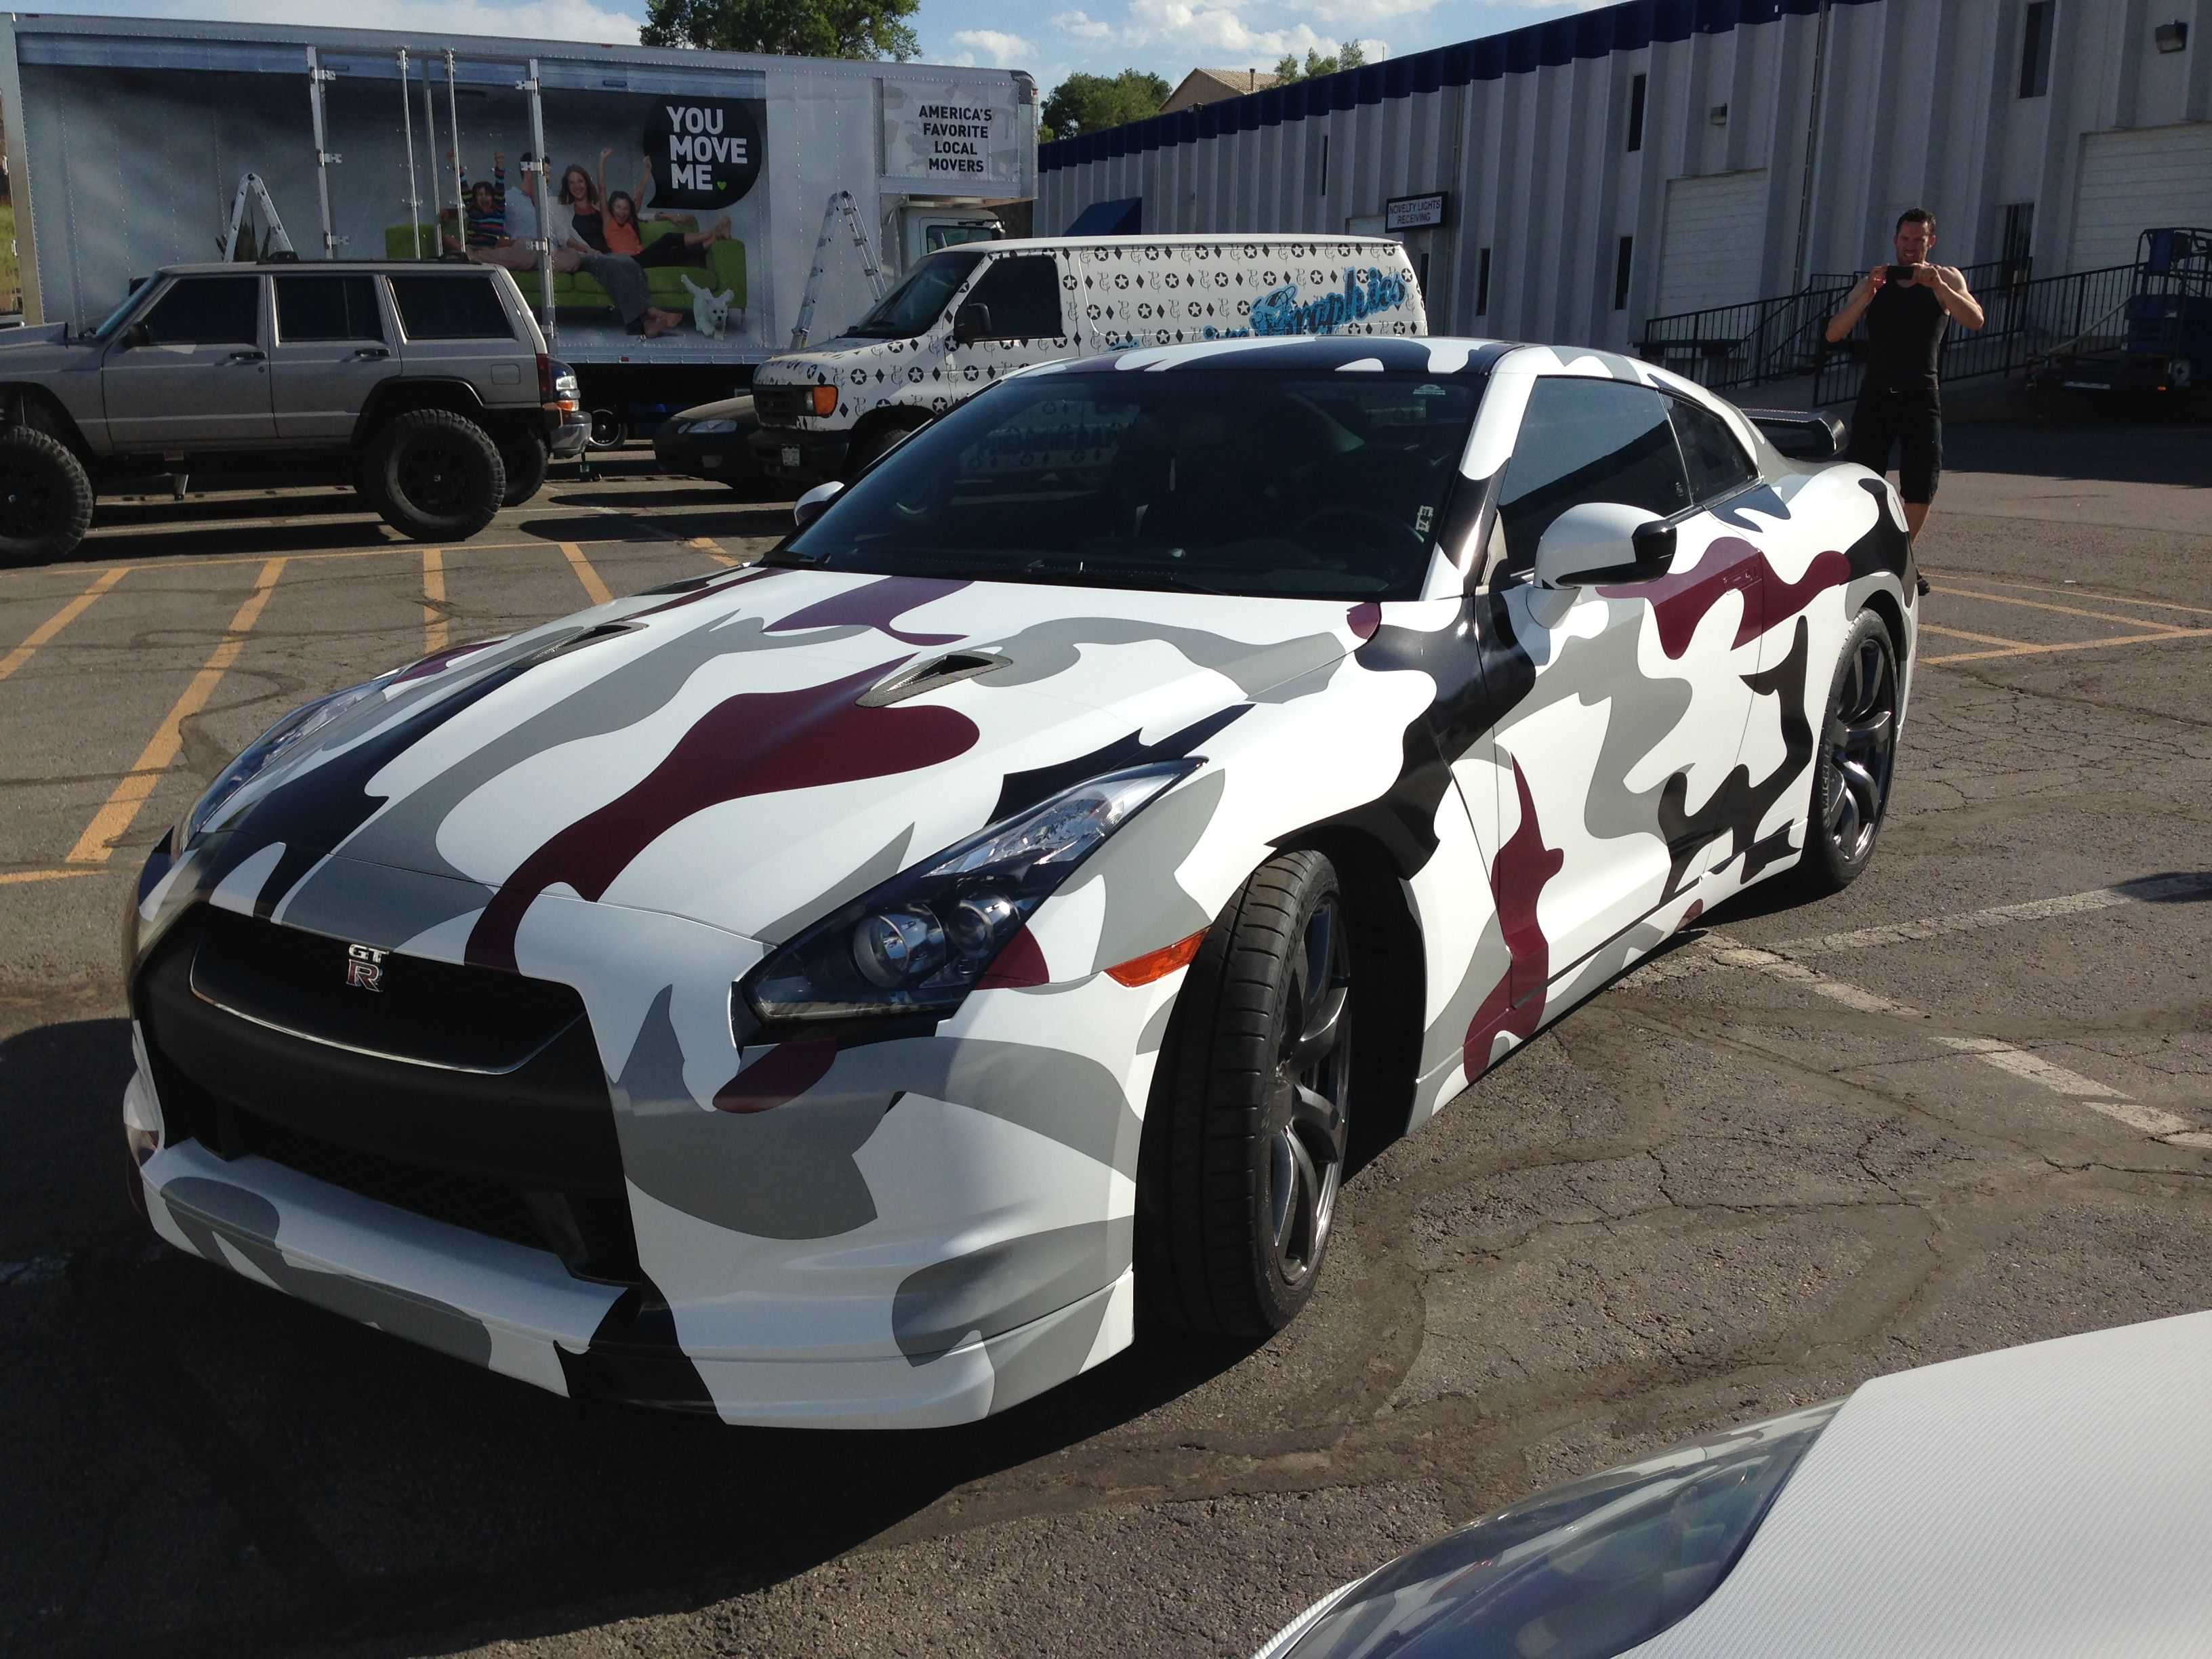 Premier Graphics Paint Wraps Vehicle Wraps In Denver, Colorado Custom